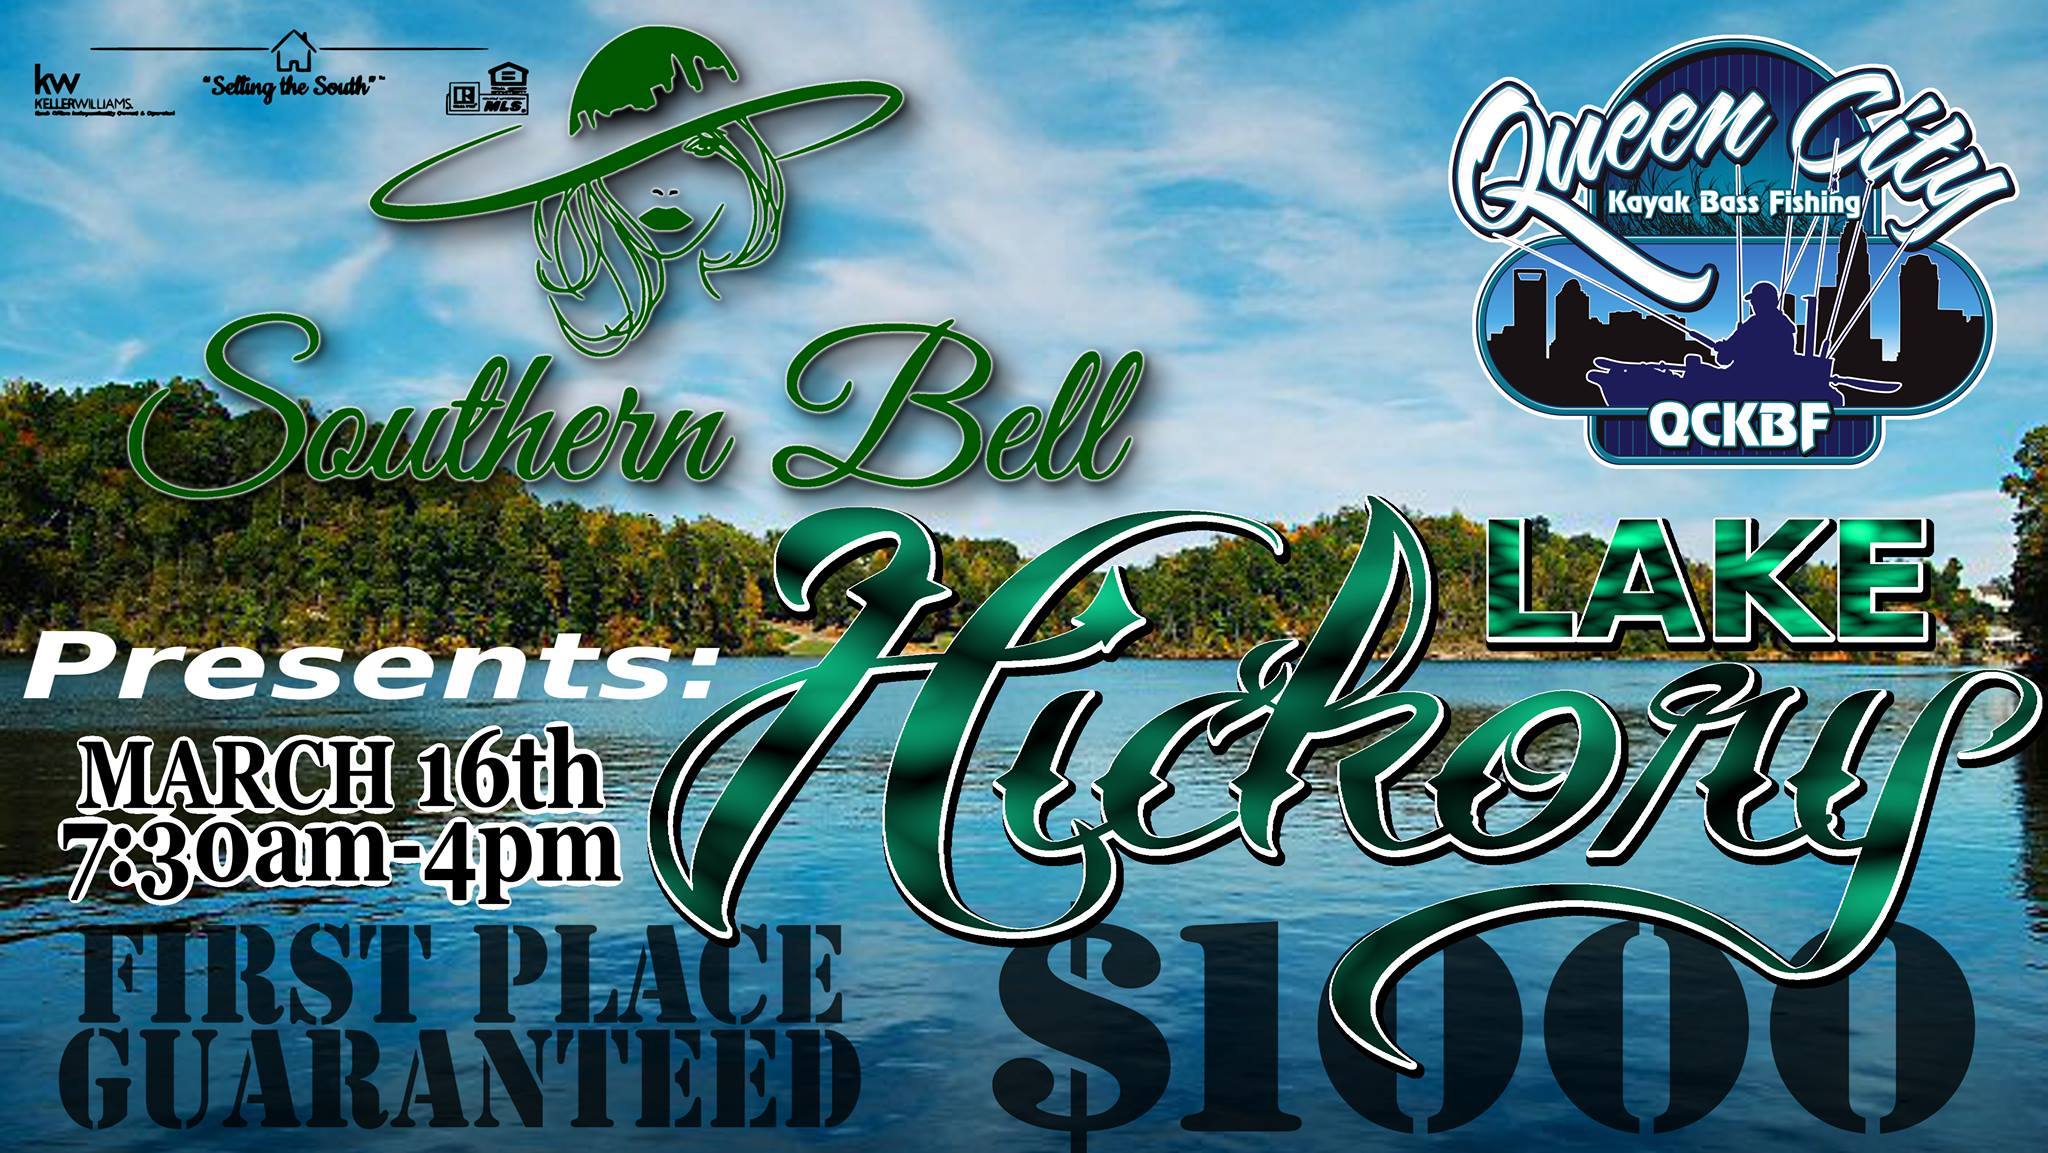 Event 2 Lake Hickory Presented by Southern Bell Realtors